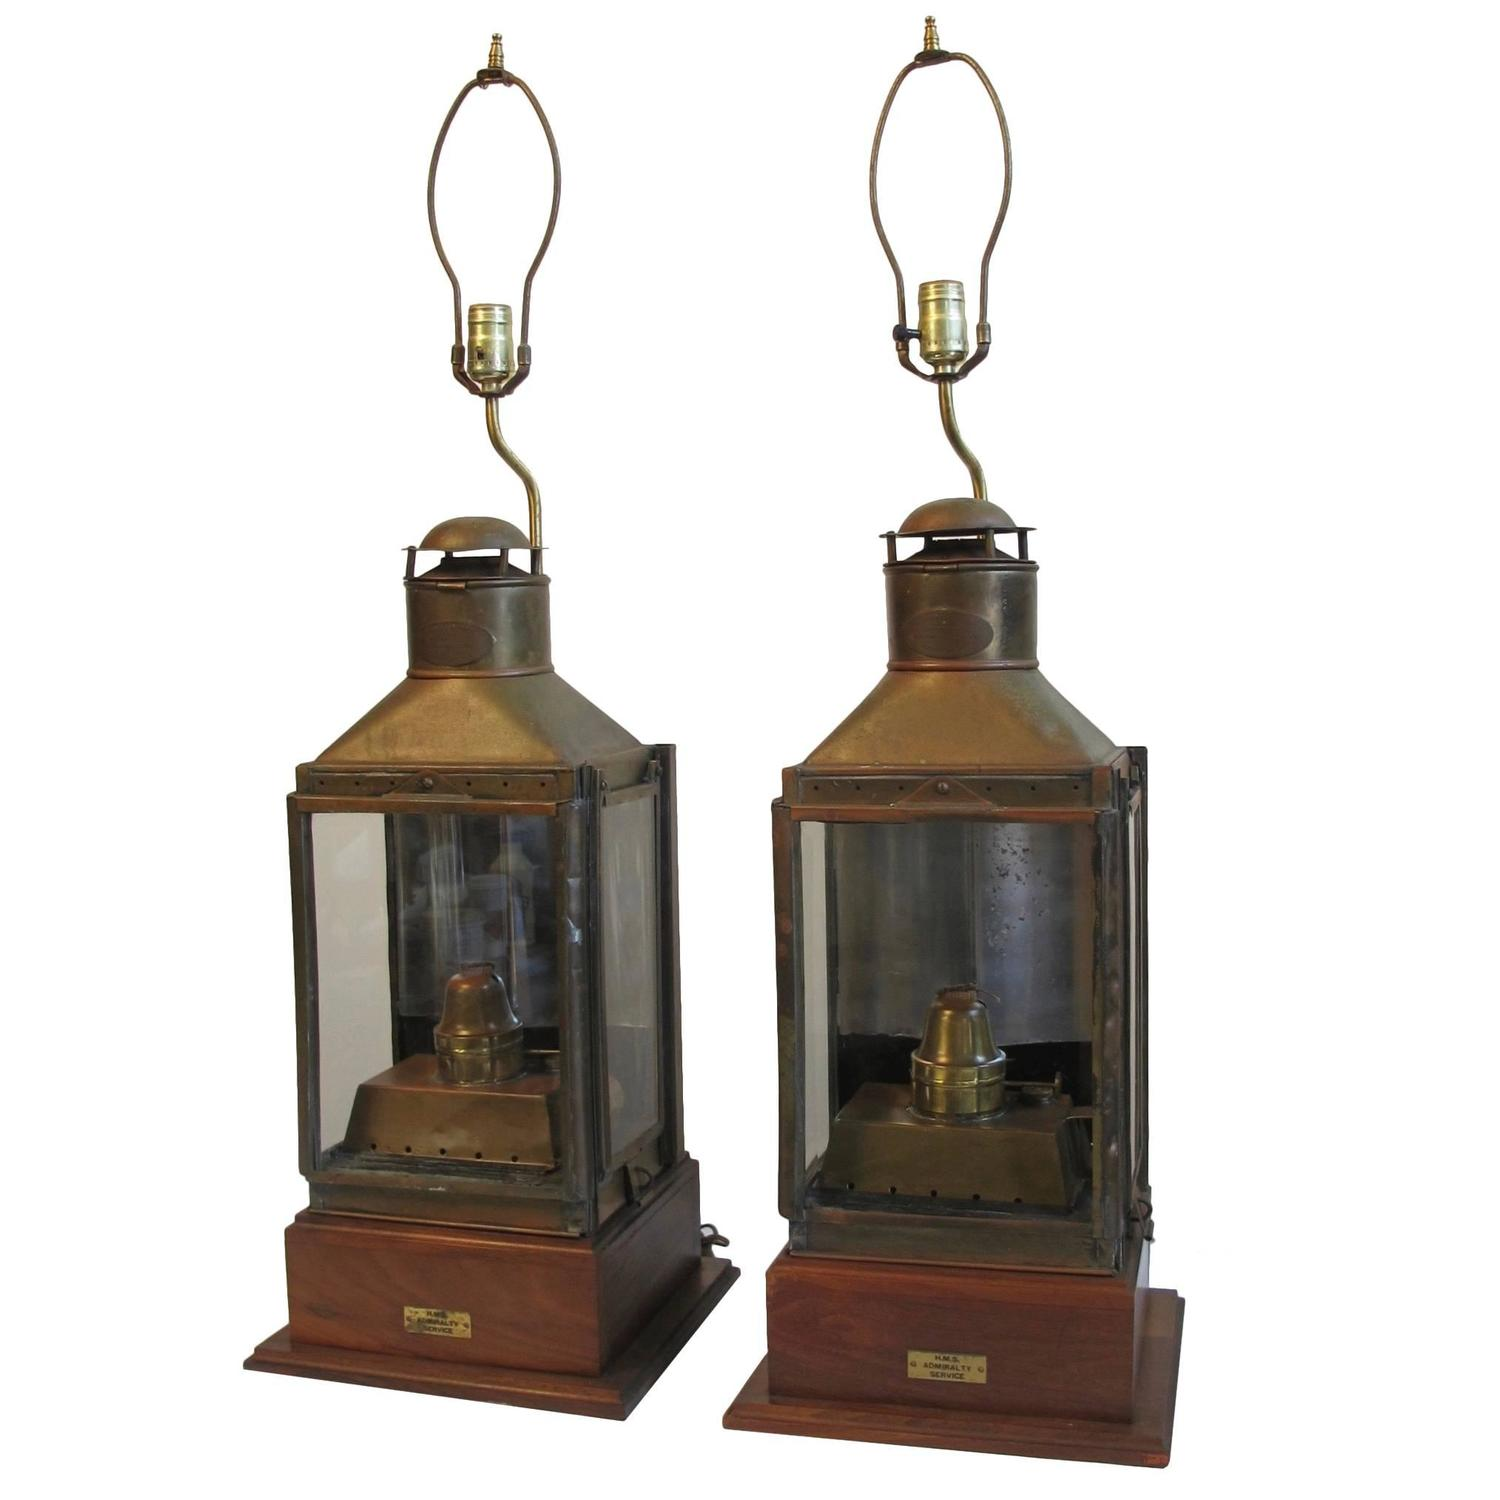 nautical brass ship lanterns lamps for sale at 1stdibs. Black Bedroom Furniture Sets. Home Design Ideas